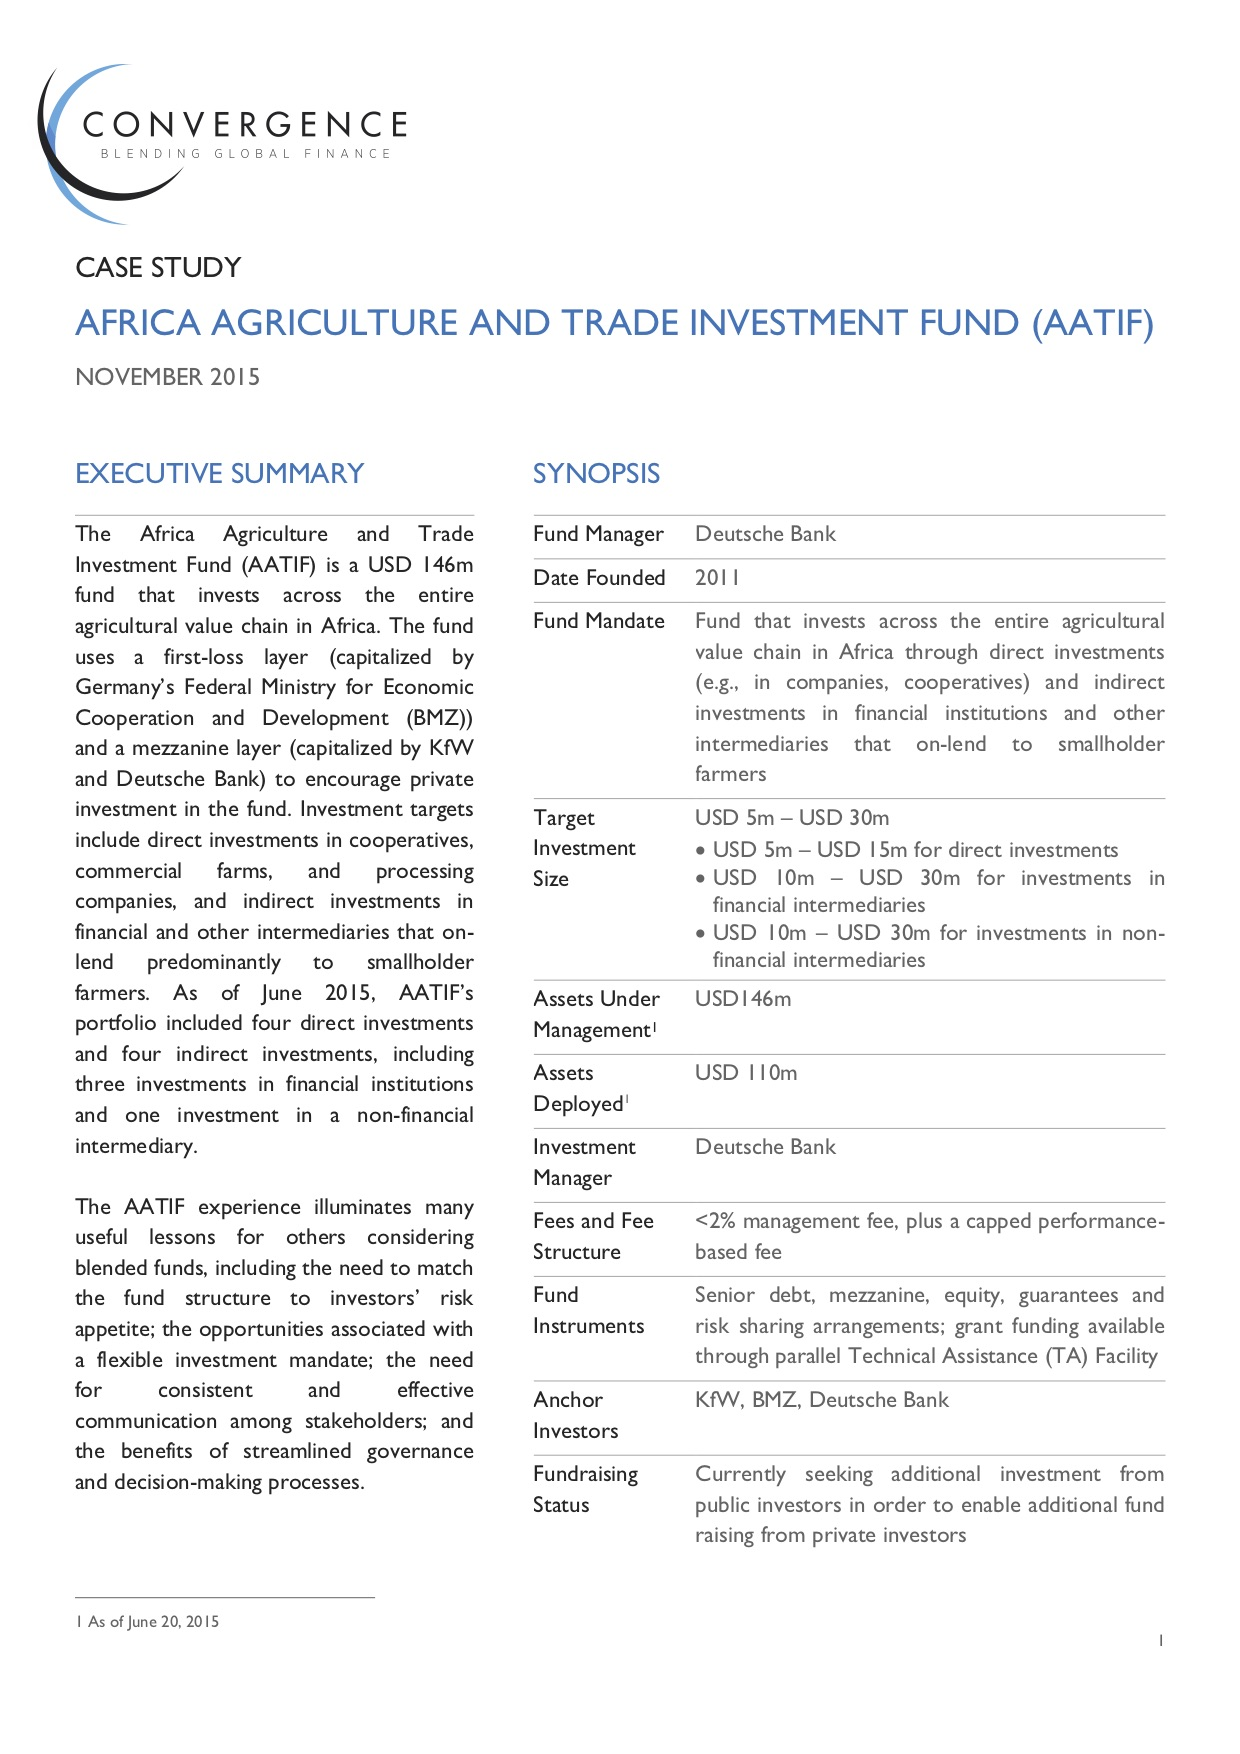 Africa Agriculture and Trade Investment Fund (AATIF) Case Study